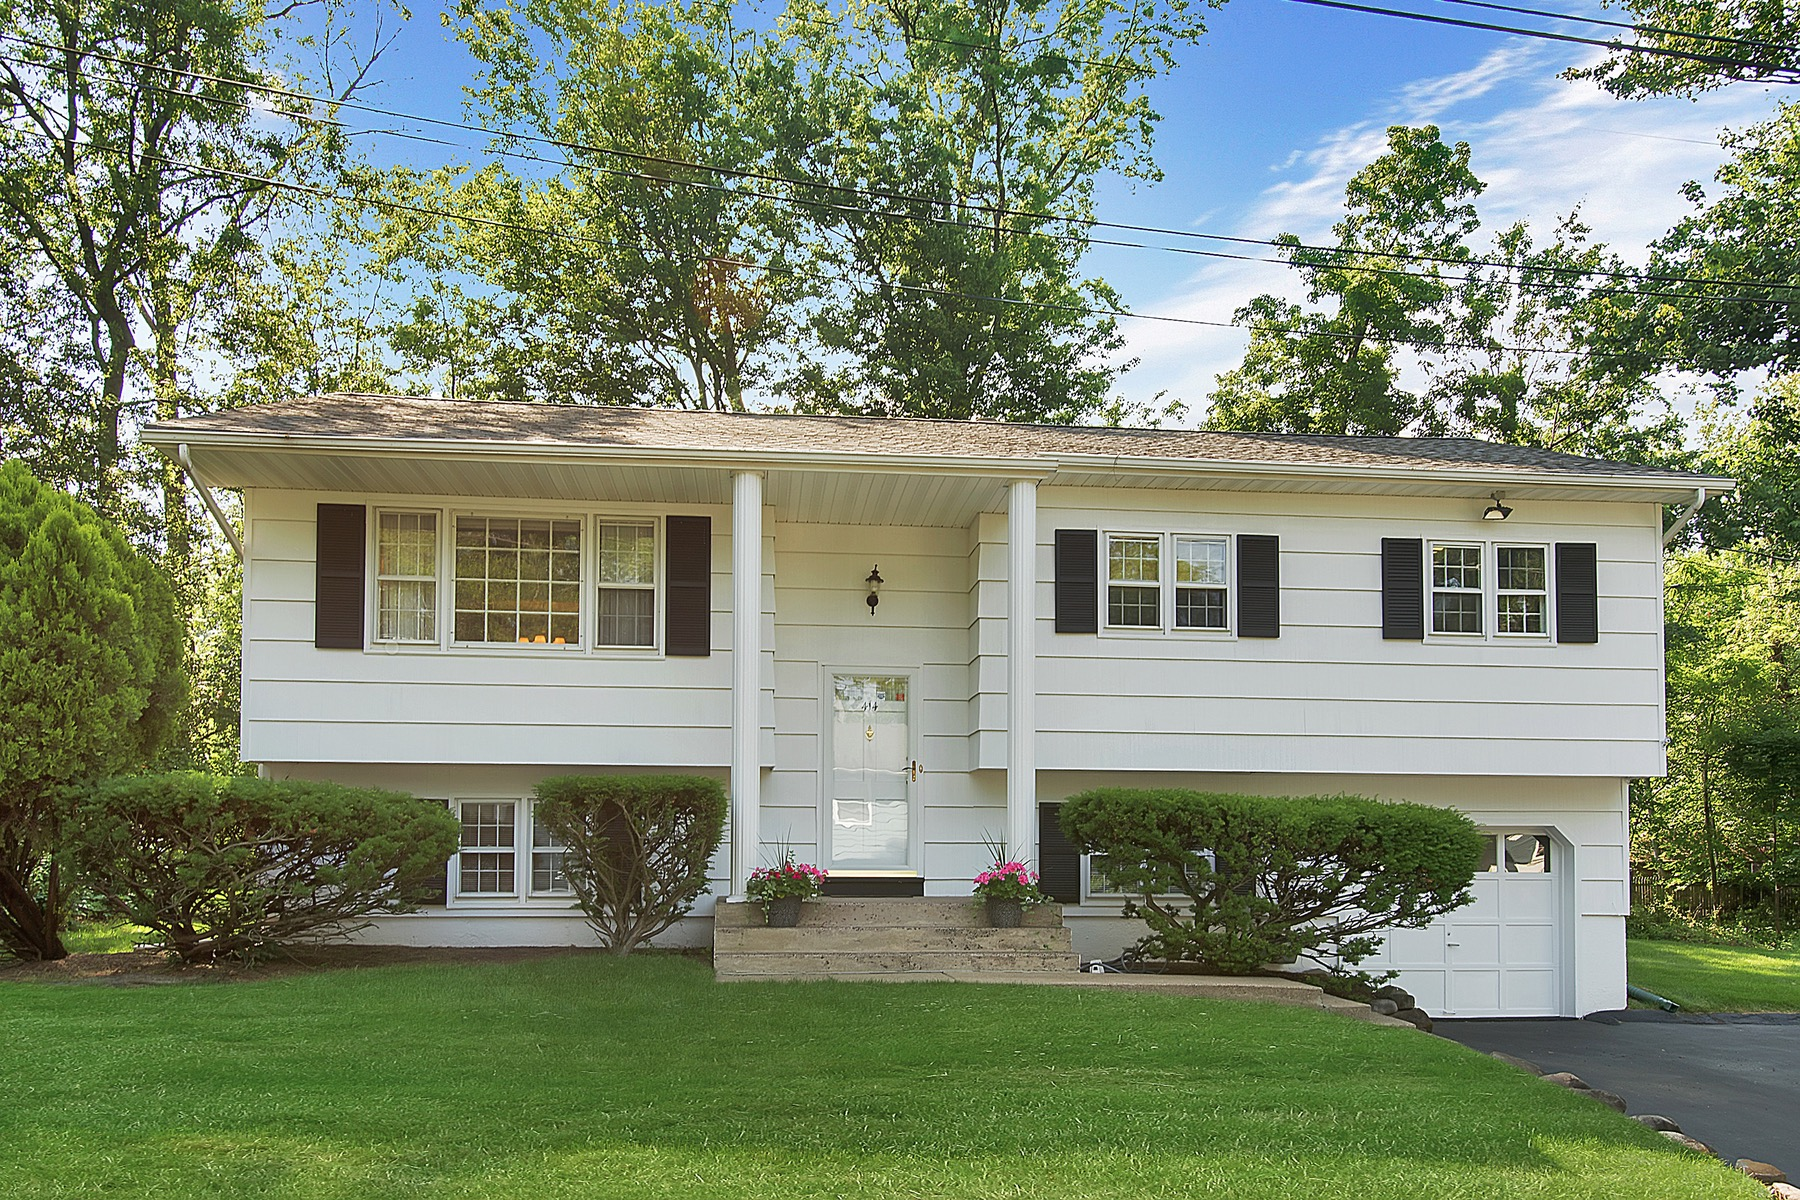 Single Family Home for Sale at Lovely Home in Quiet Setting 414 Maple Avenue Upper Nyack, New York, 10960 United States